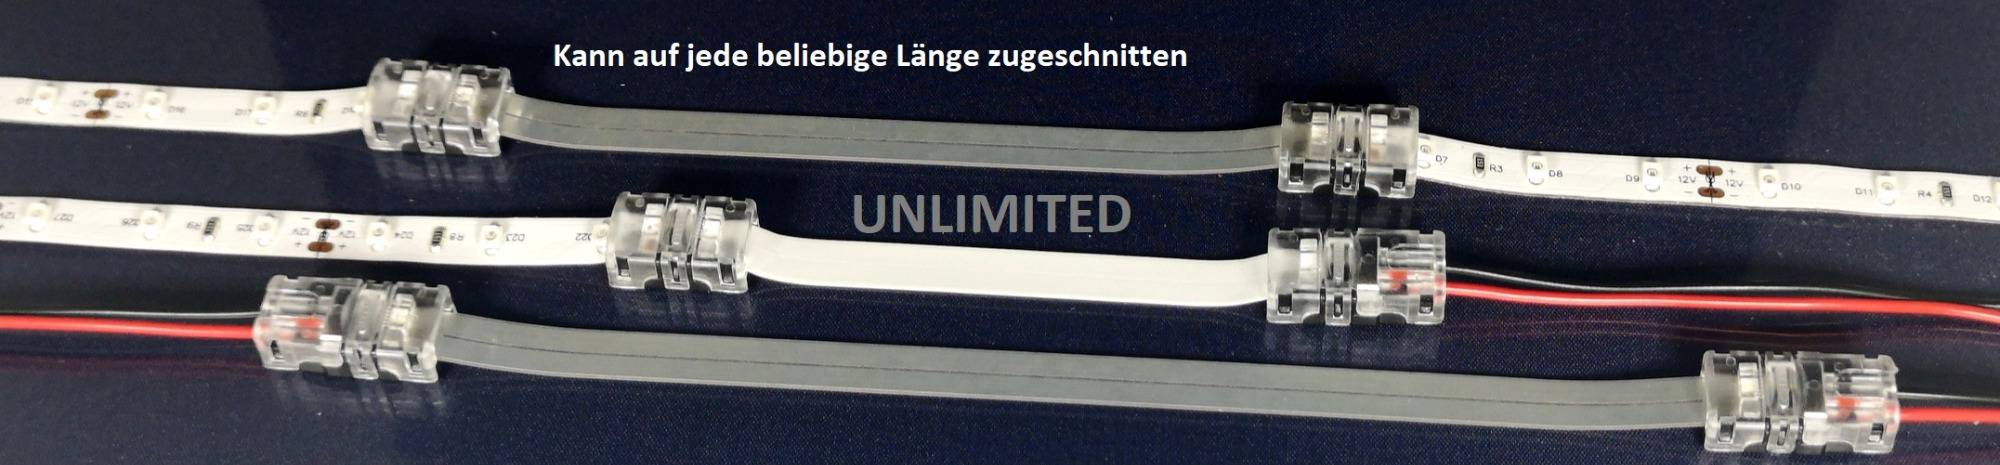 LED-CONN UNLIMITED